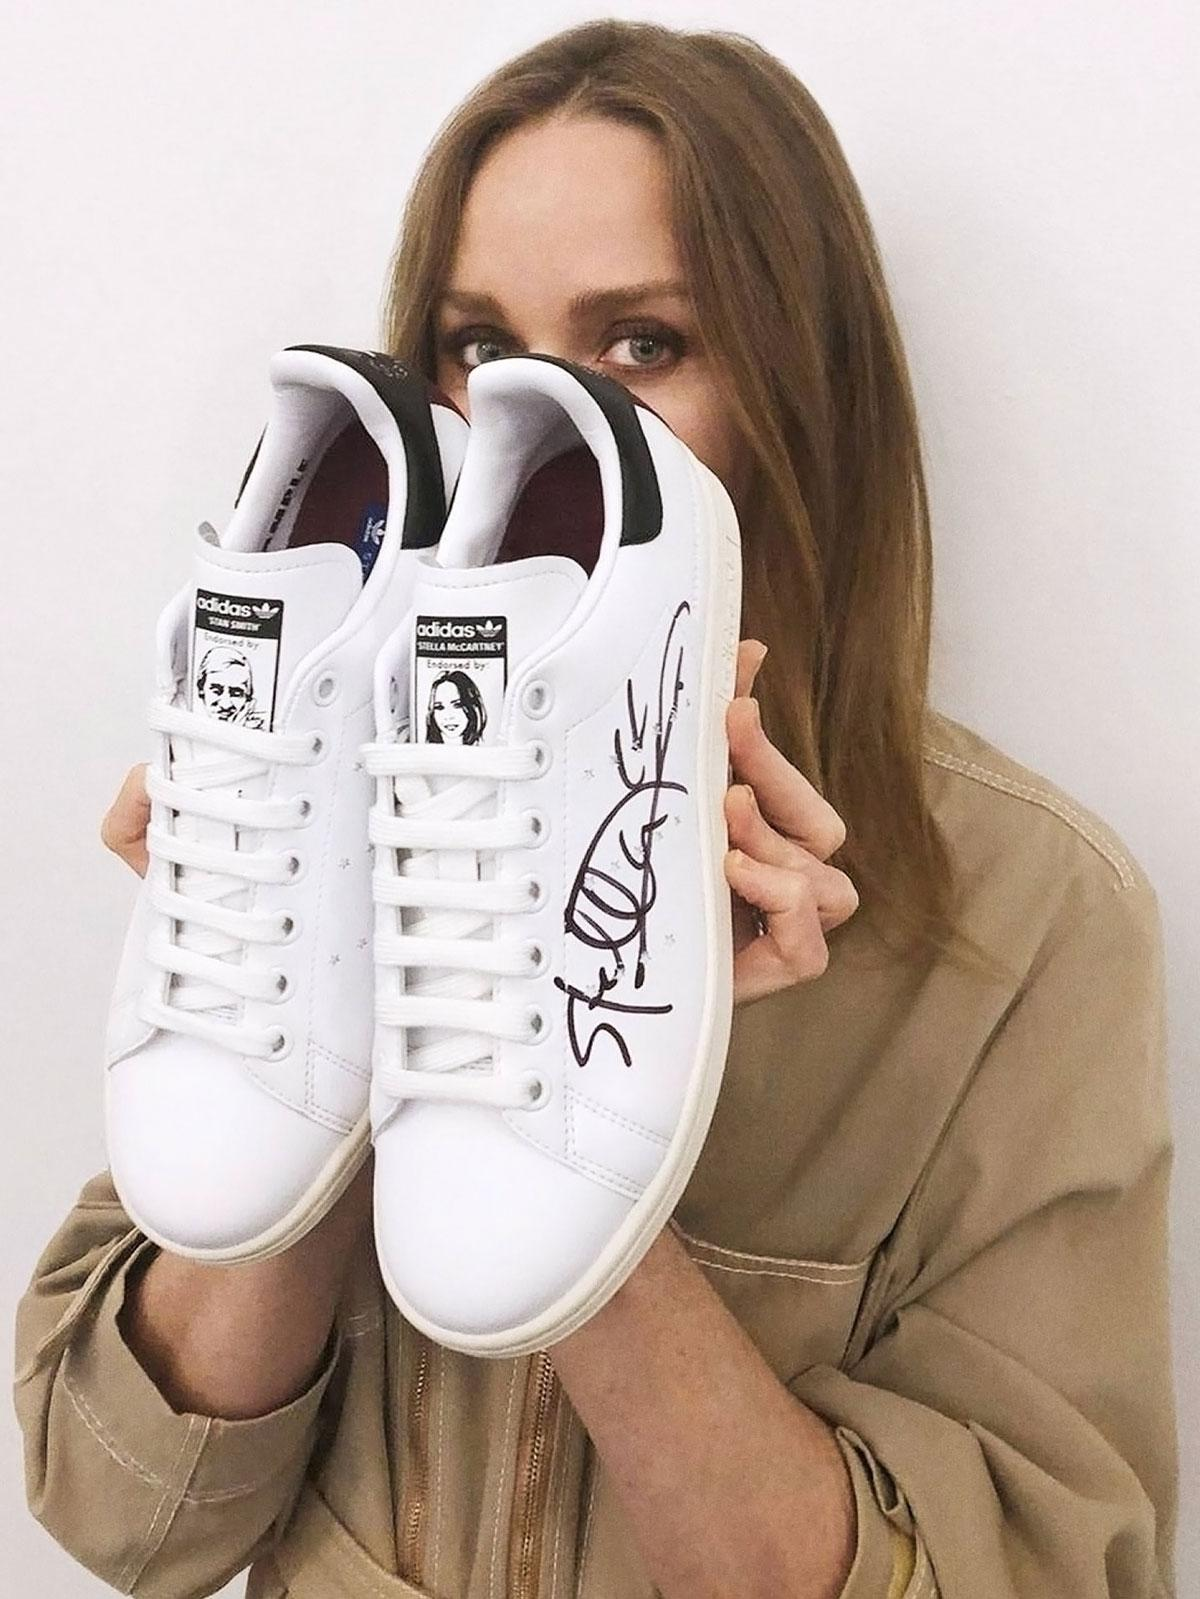 Stella McCartney and Adidas have teamed up to produce a leather-free, vegan shoe